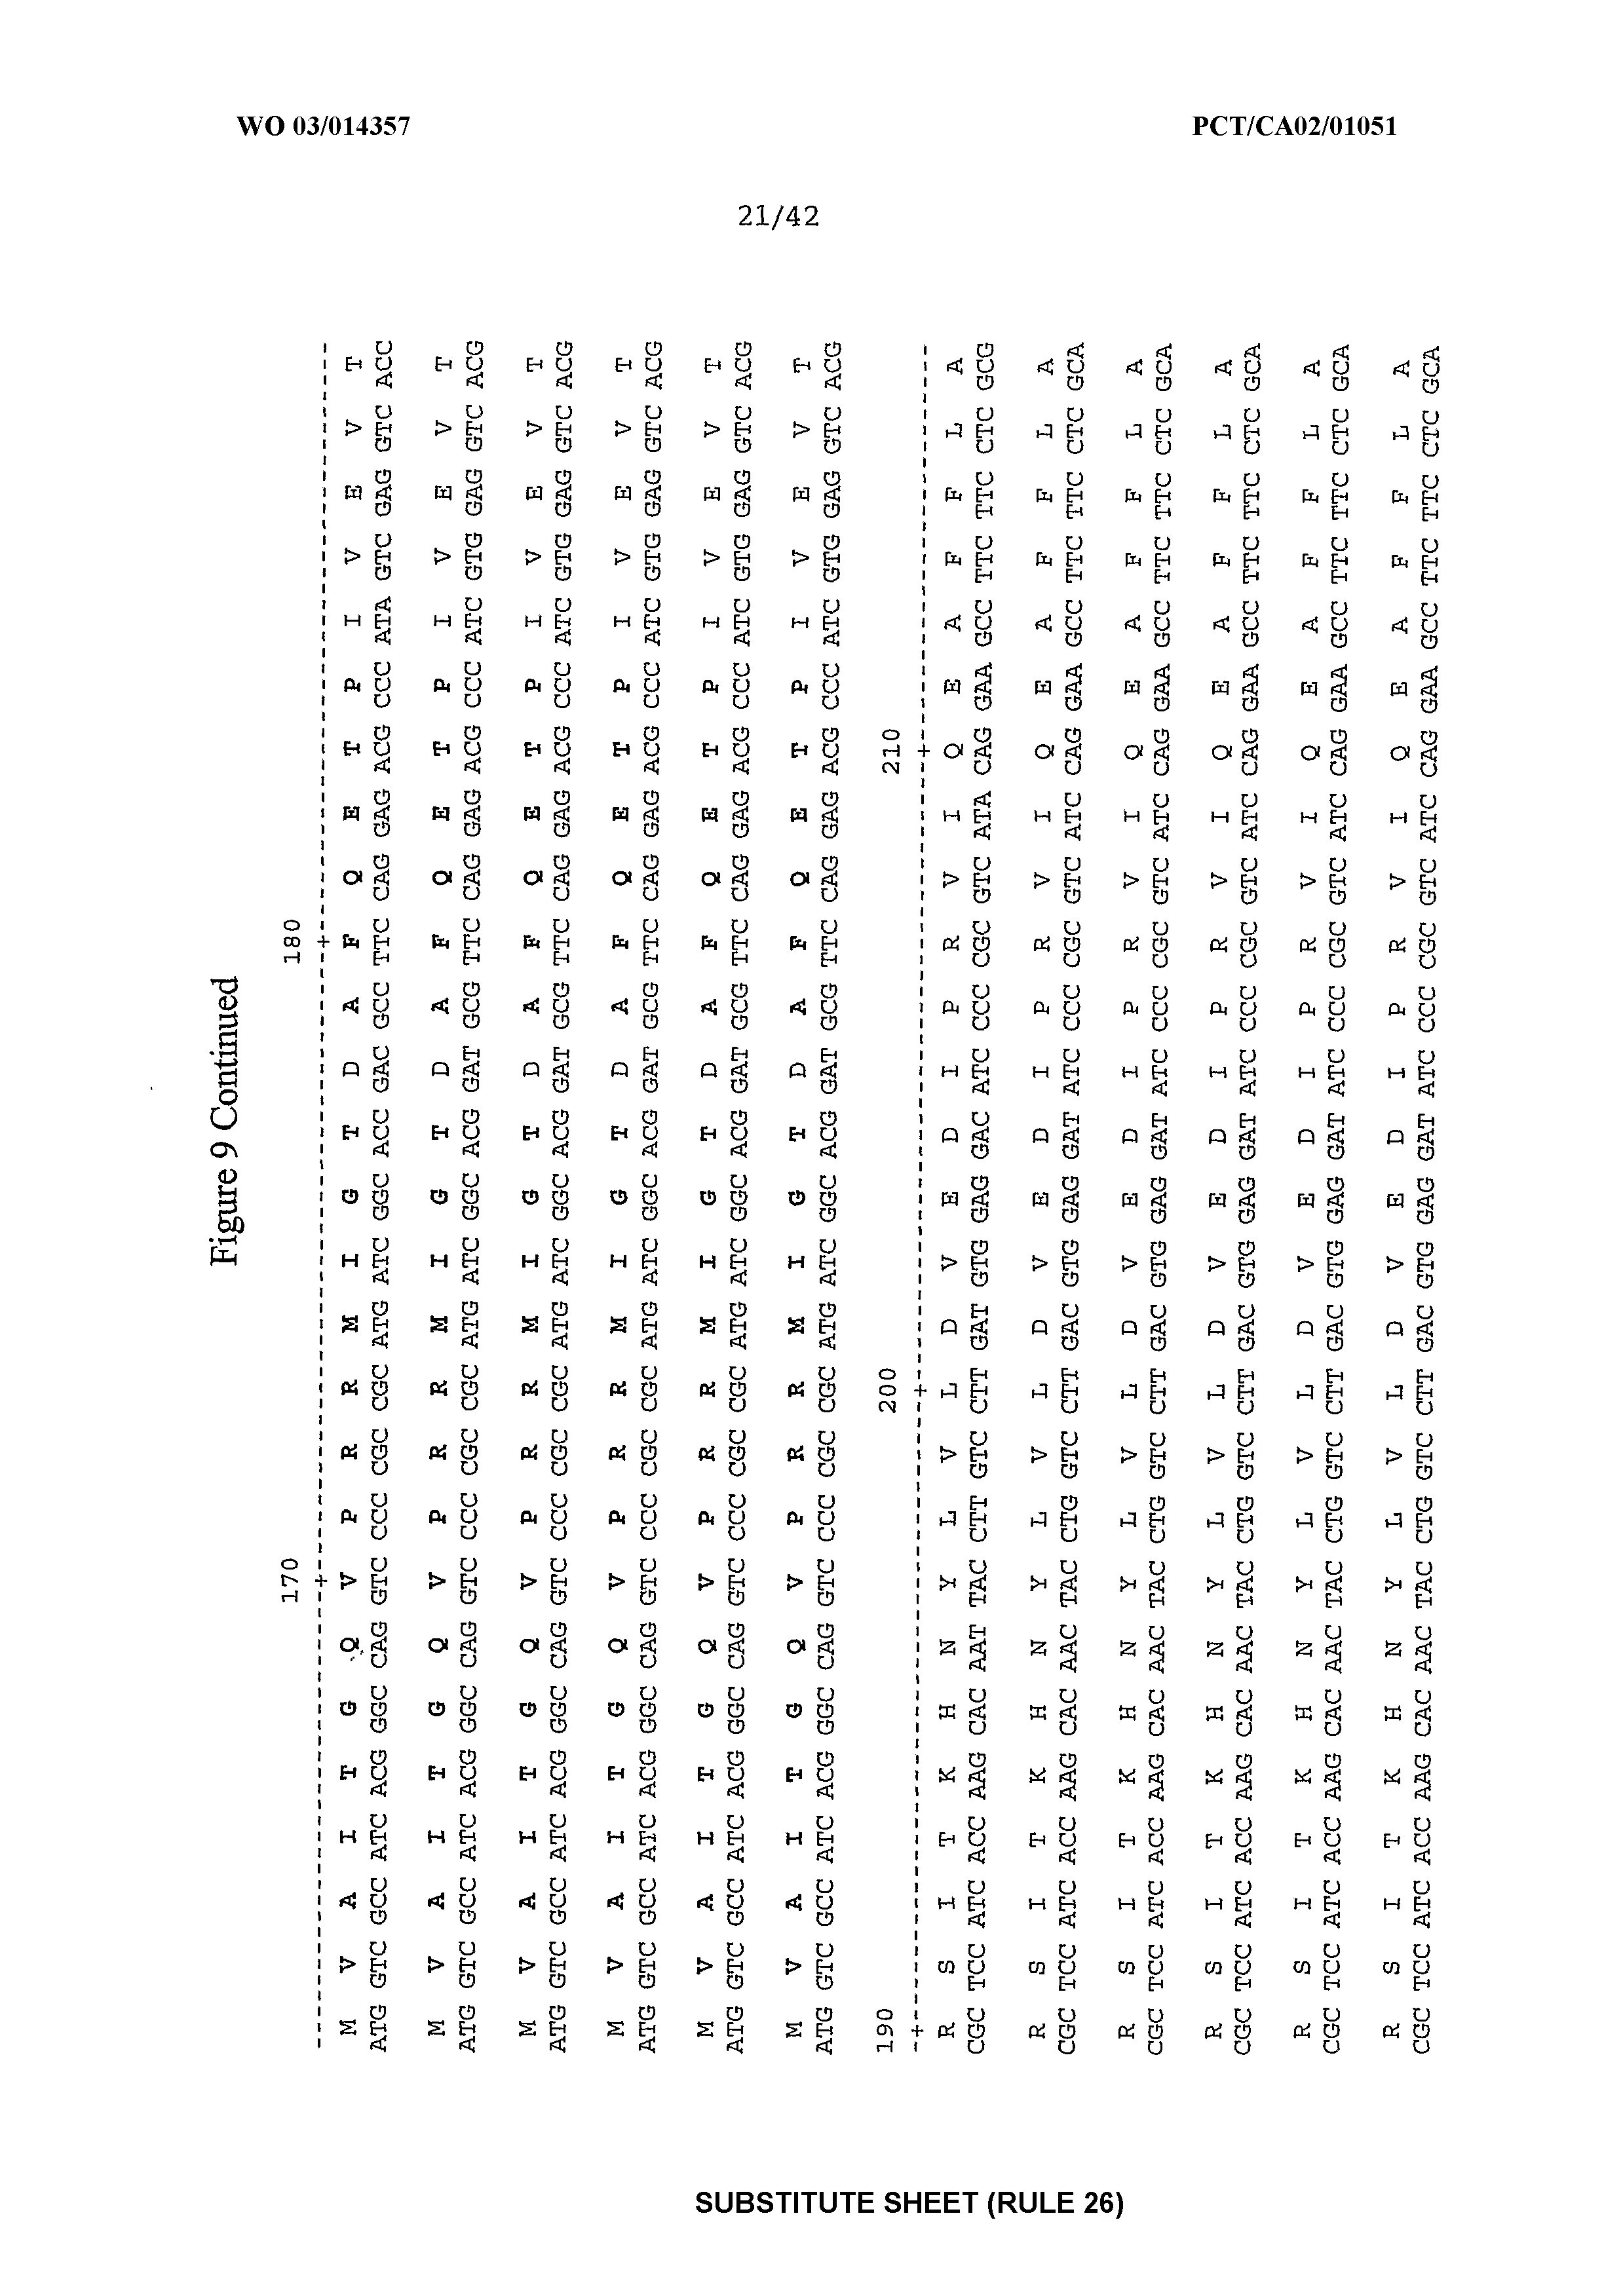 WO 2003/014357 A1 - Wheat Plants Having Increased Resistance To